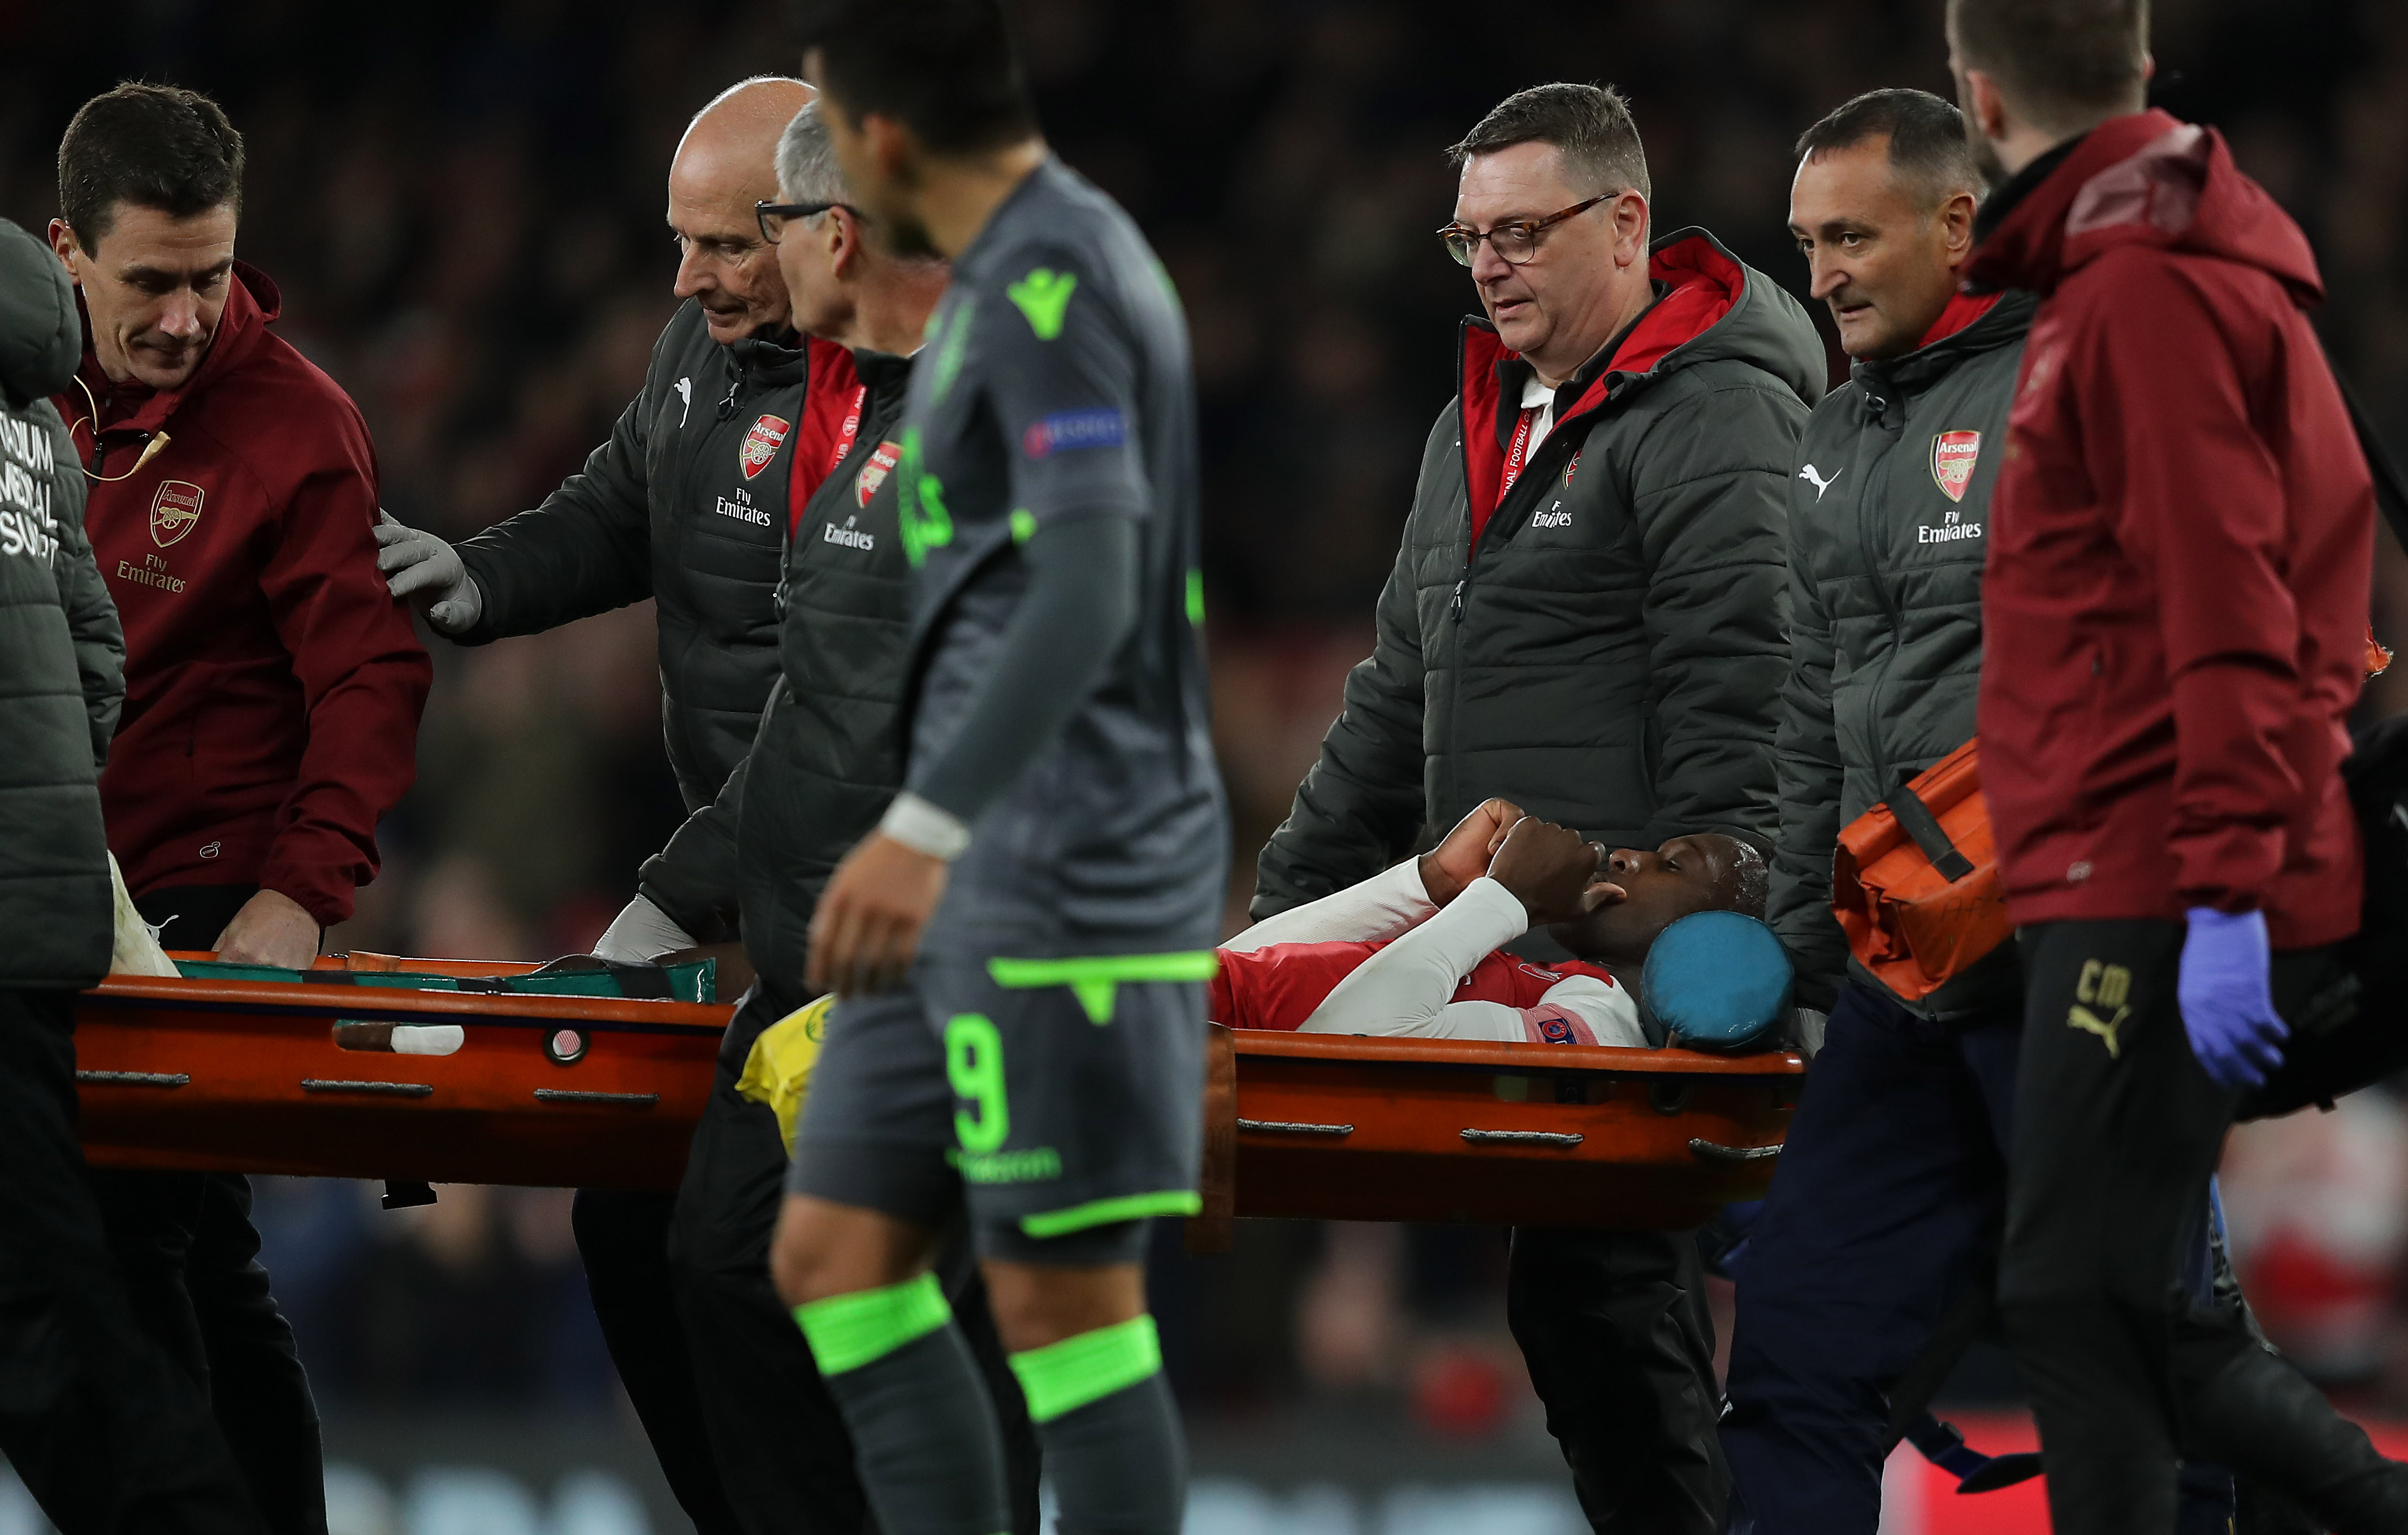 Danny Welbeck suffered a horrific ankle inury break which will see him sidelined for probably the rest of the season. (Photo courtesy: AFp/Getty)